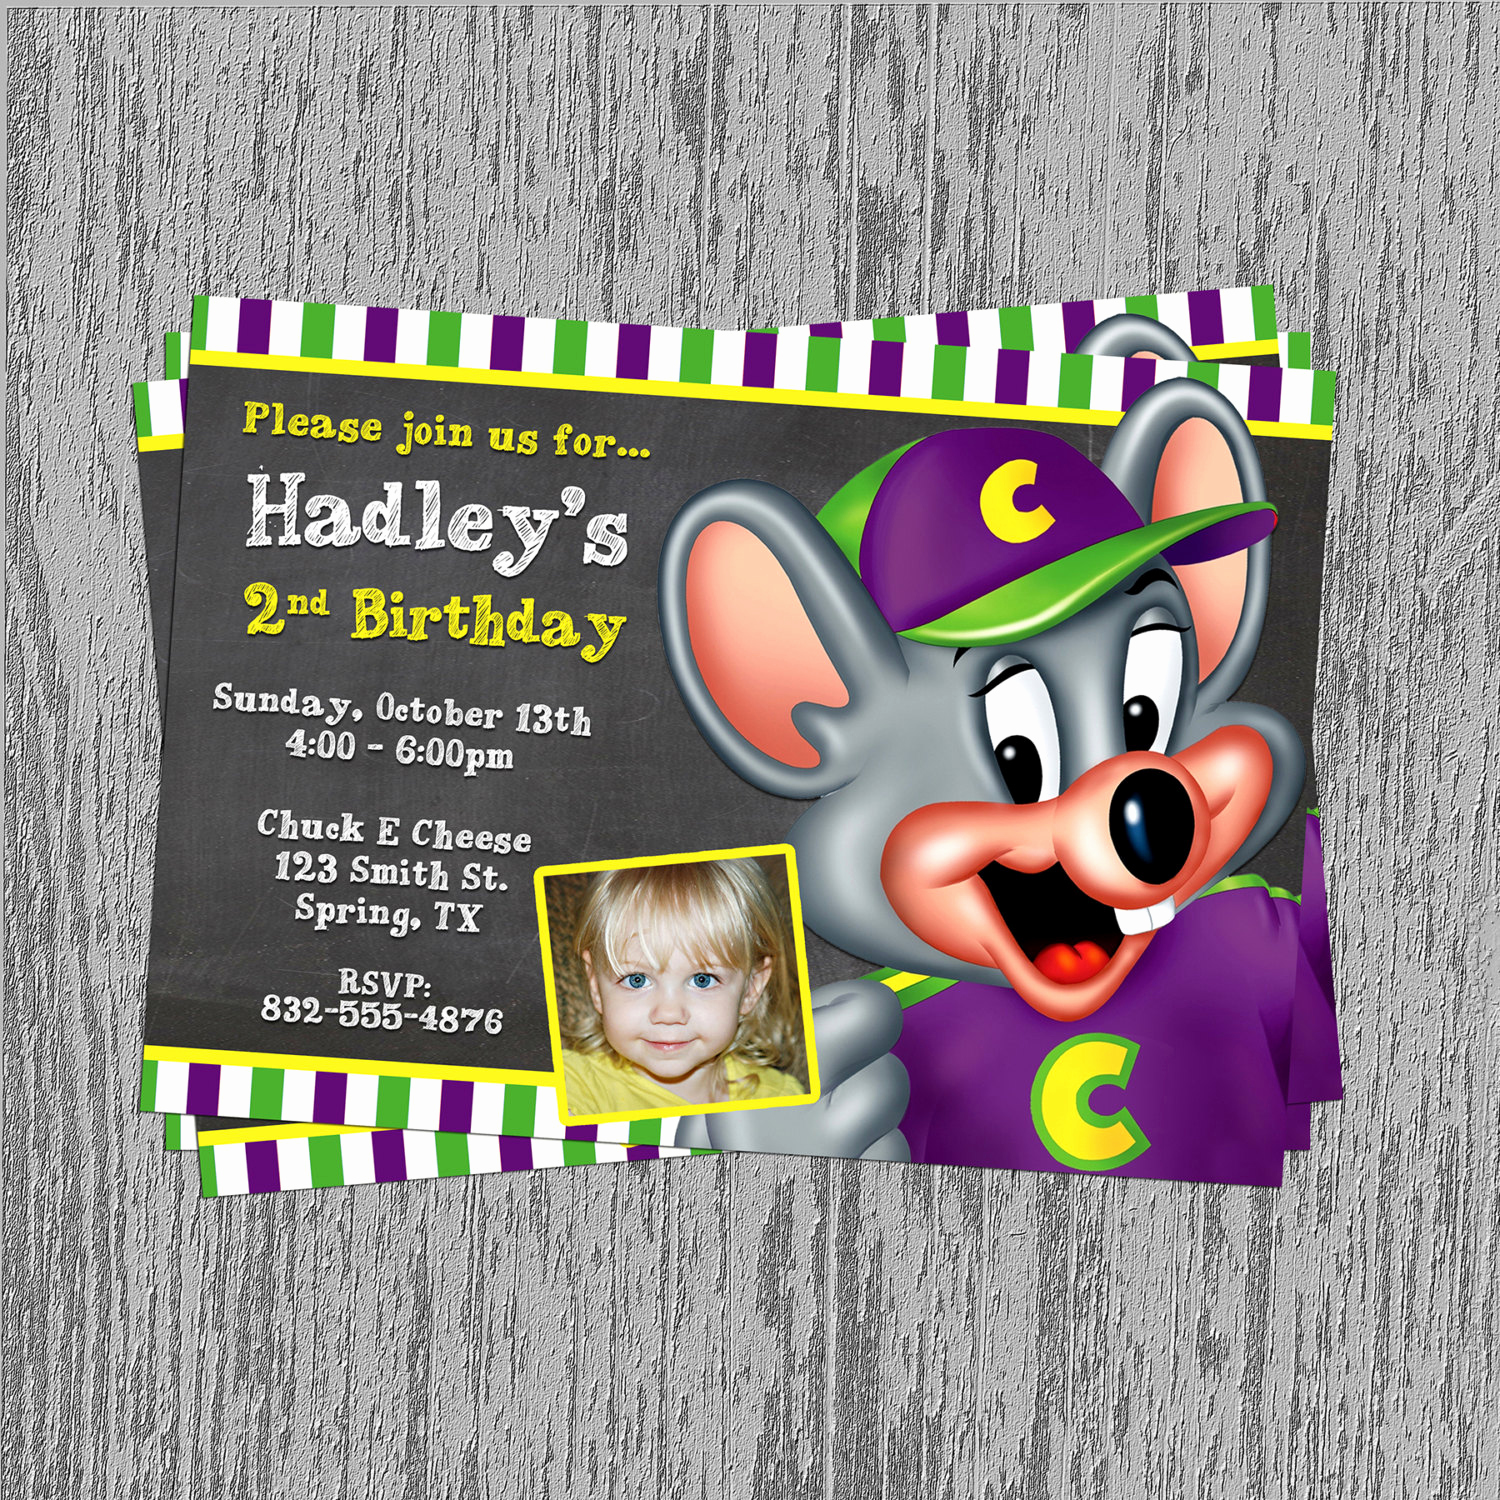 Chuck E Cheese Party Invitation Lovely Unavailable Listing On Etsy